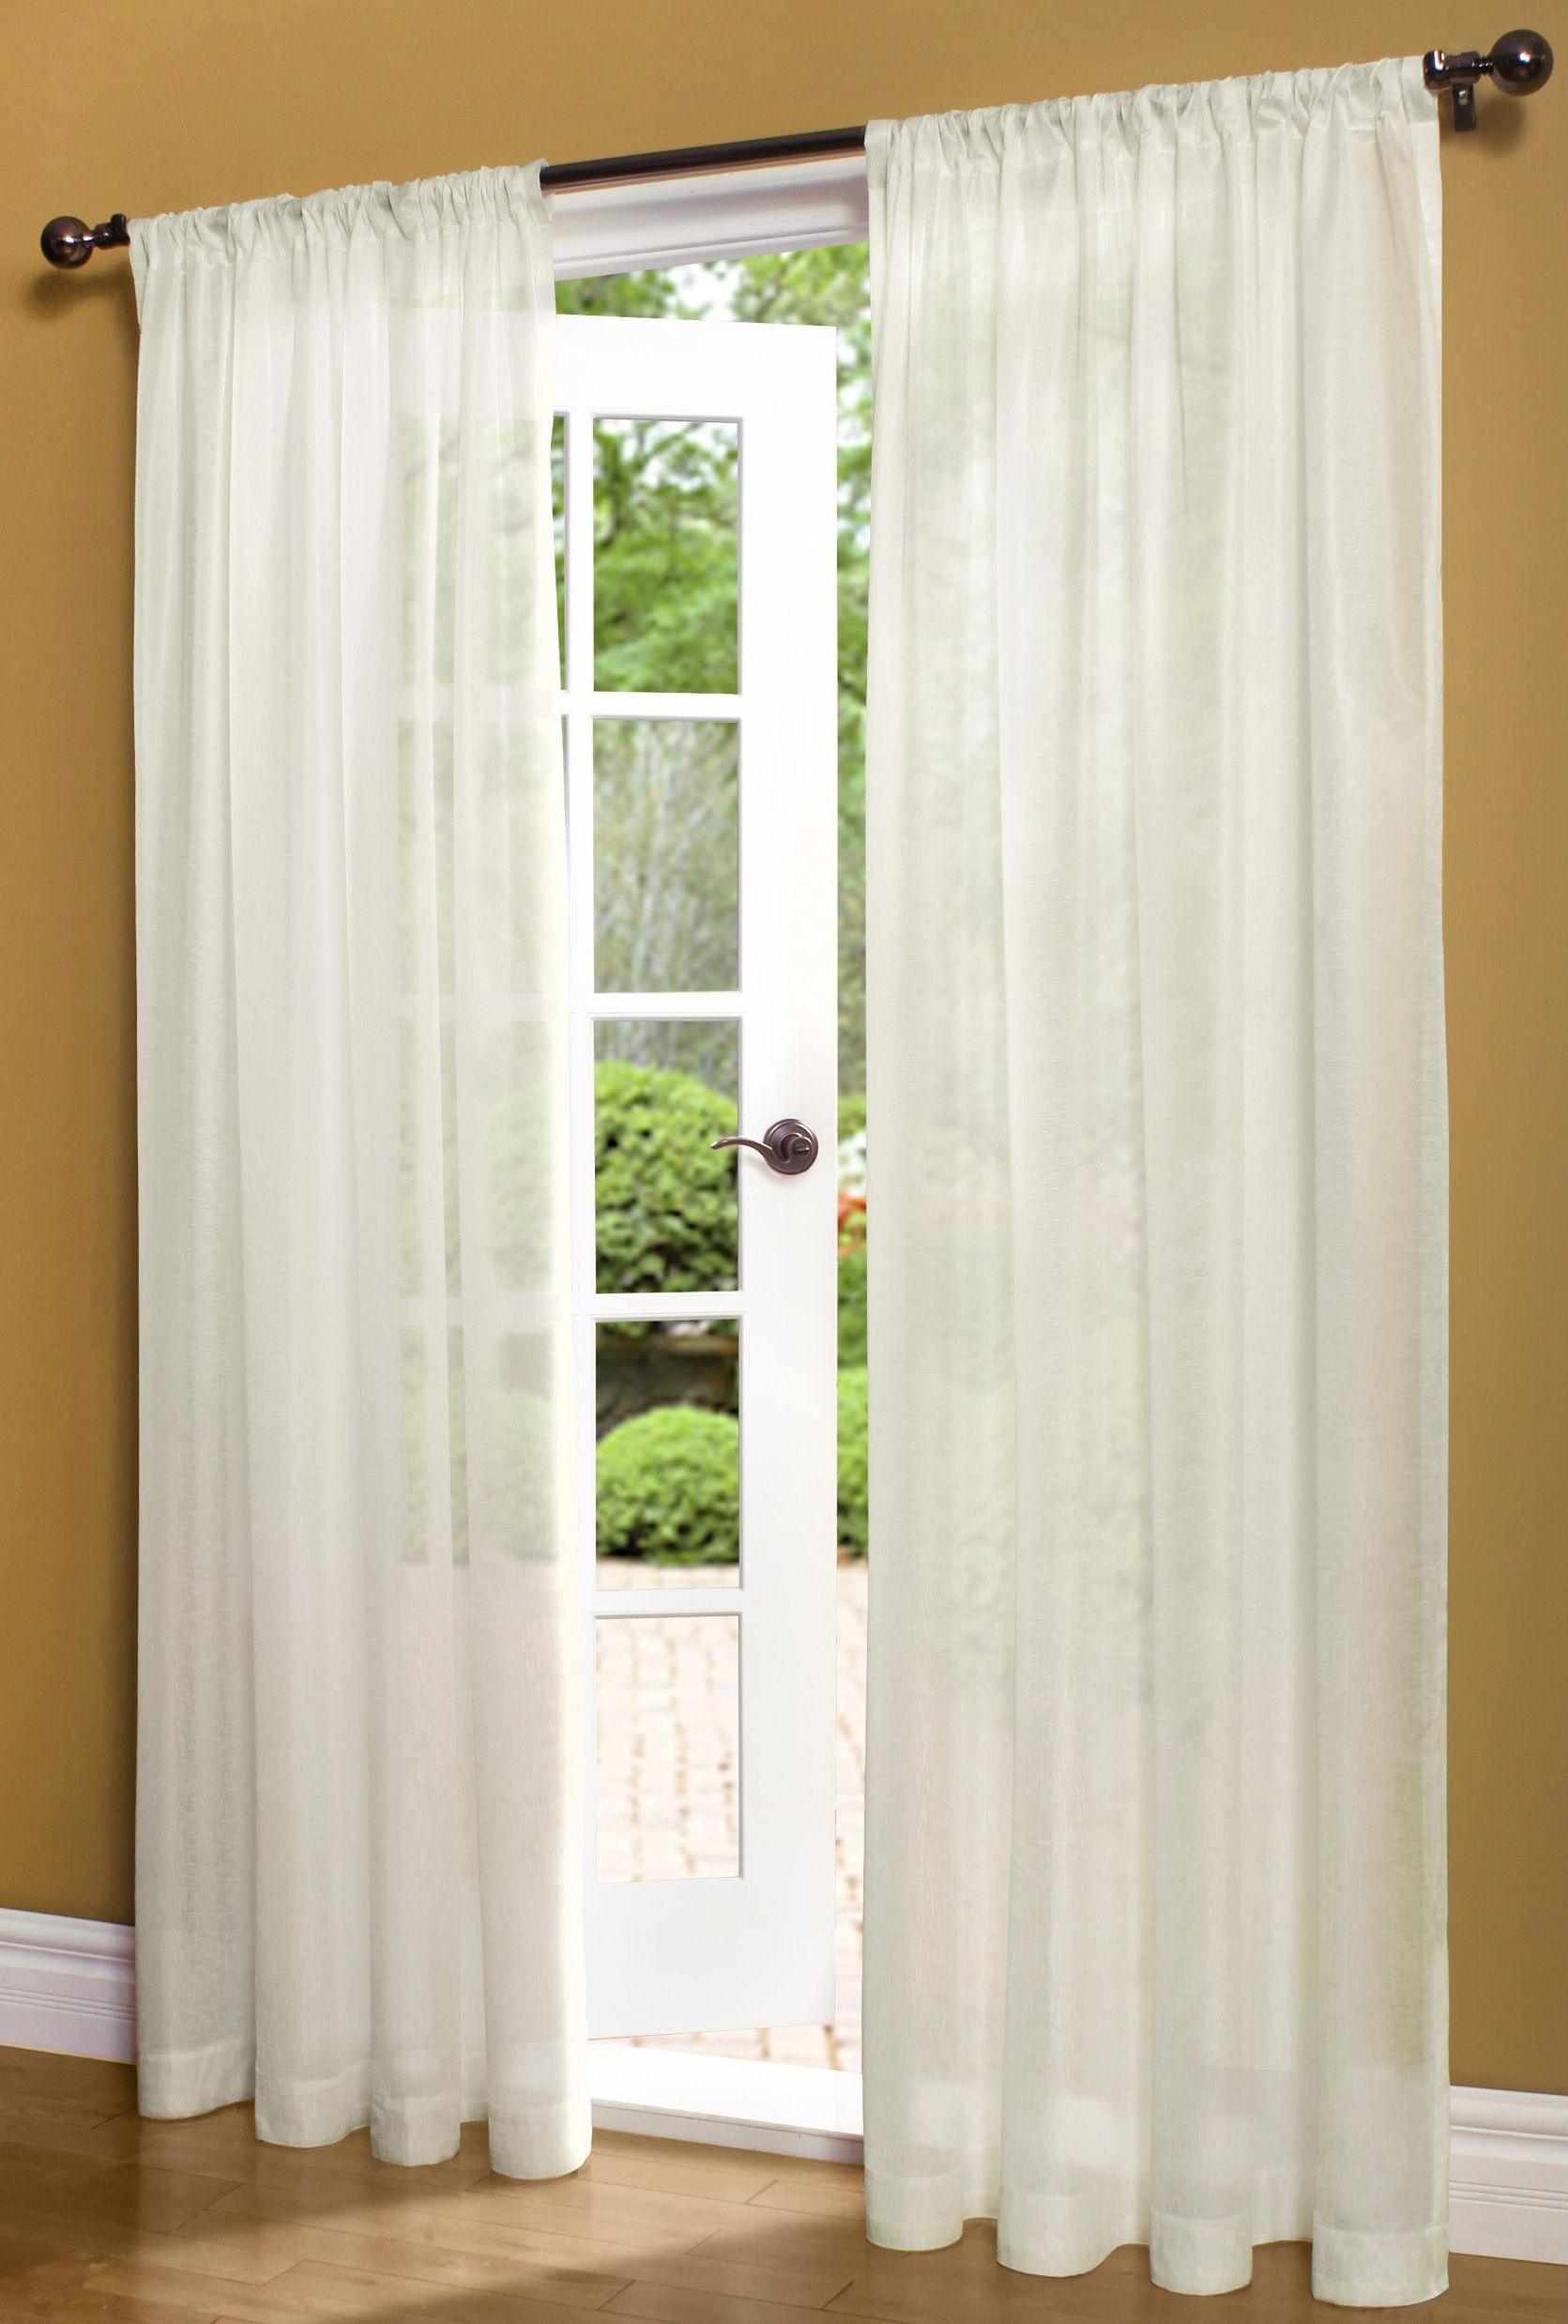 Window Cute Windows Decor Ideas With Window Sheers Lamosquitia Intended For Sheer White Curtain Panels (Image 23 of 25)